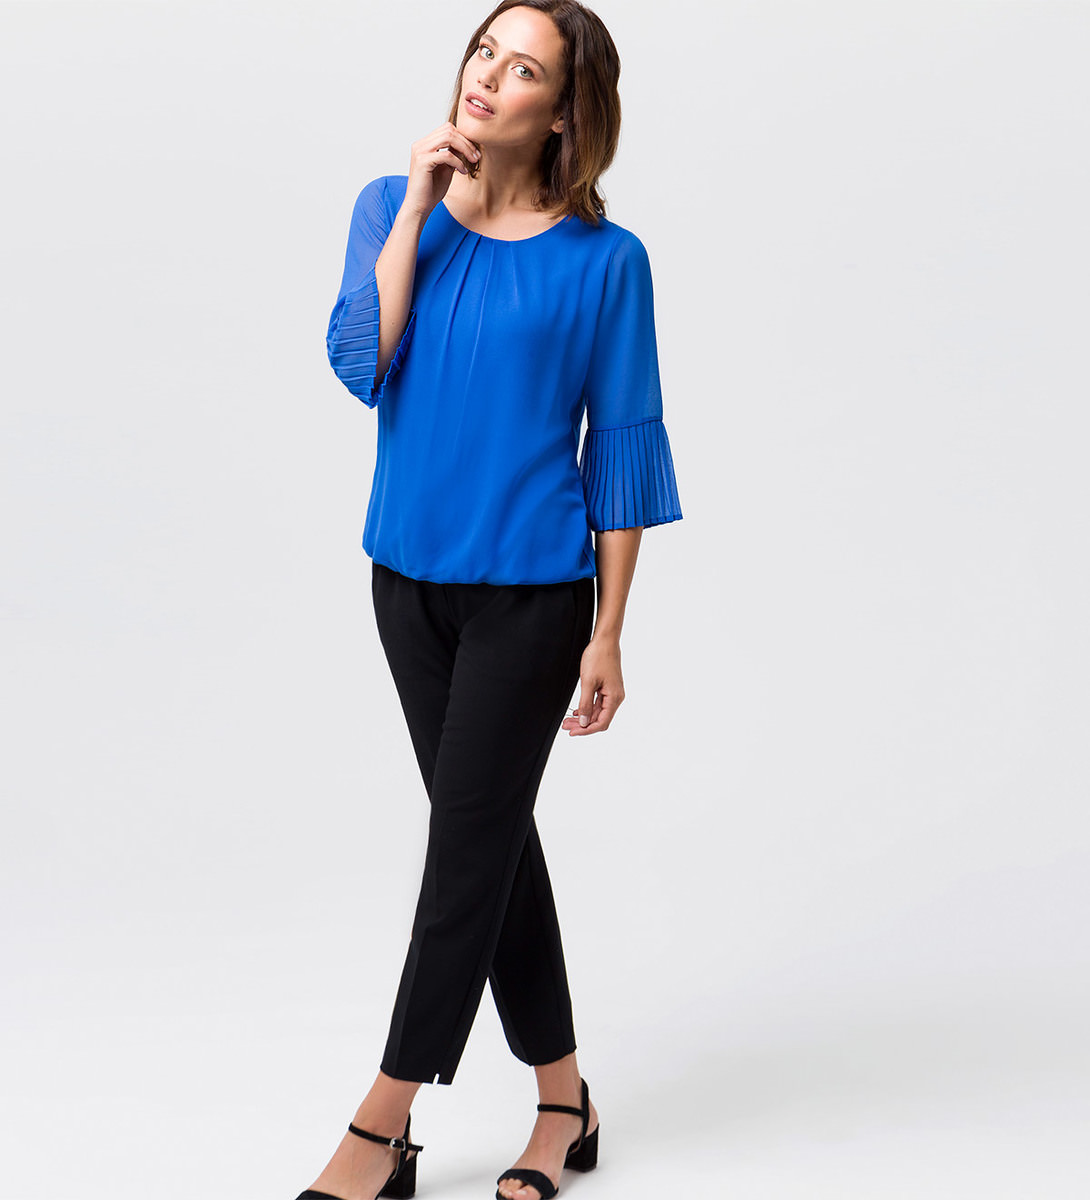 Top im transparenten Design in cobalt blue